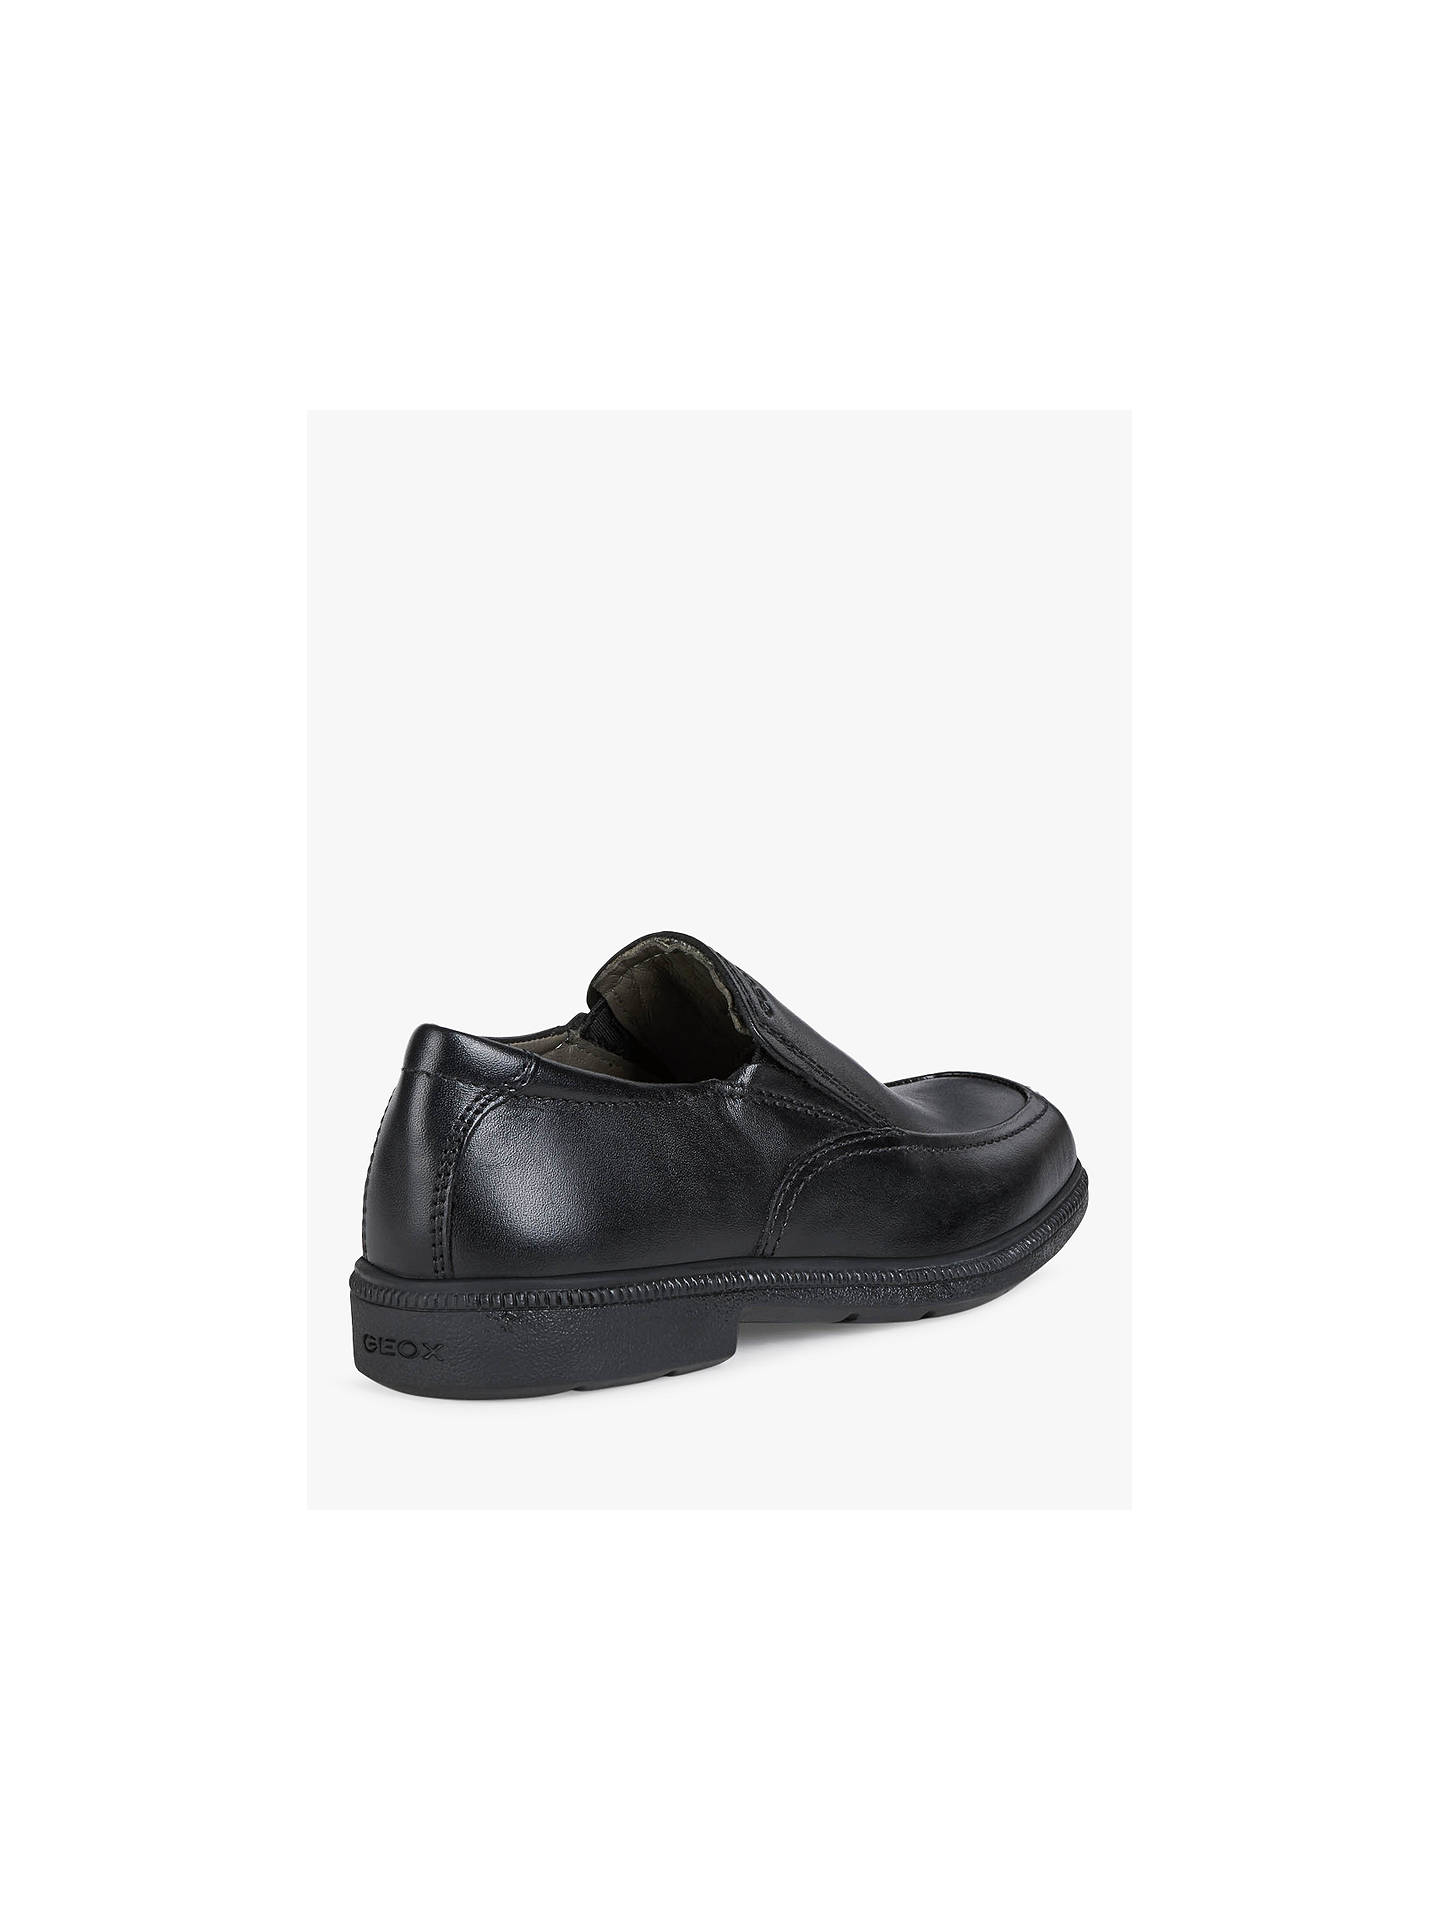 Buy Geox Children's Federico Slip-on Shoes, Black, 36 Online at johnlewis.com